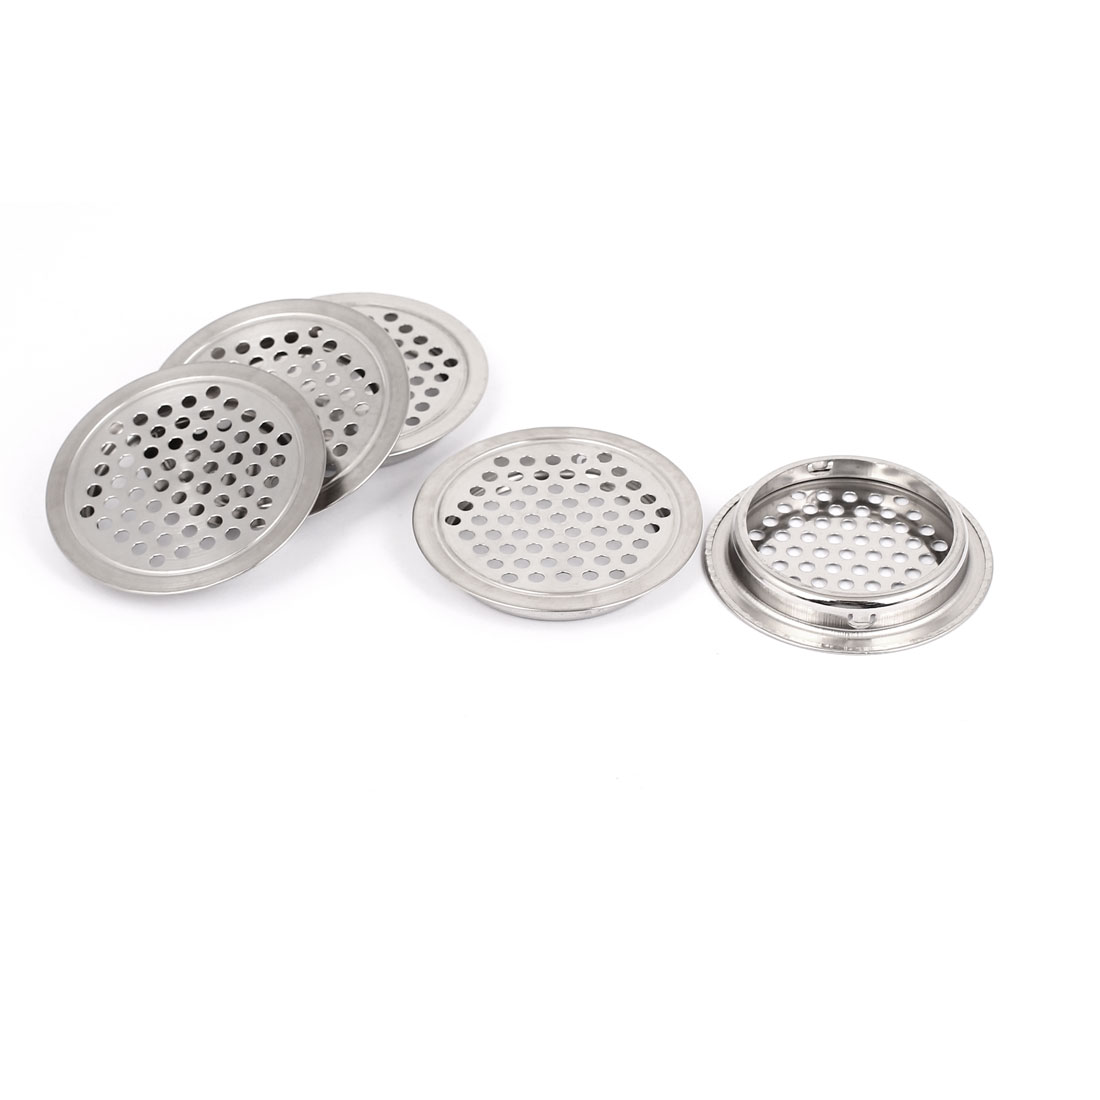 65mmx9mm Stainless Steel Perforated Round Mesh Air Vents Louvers 5 Pcs